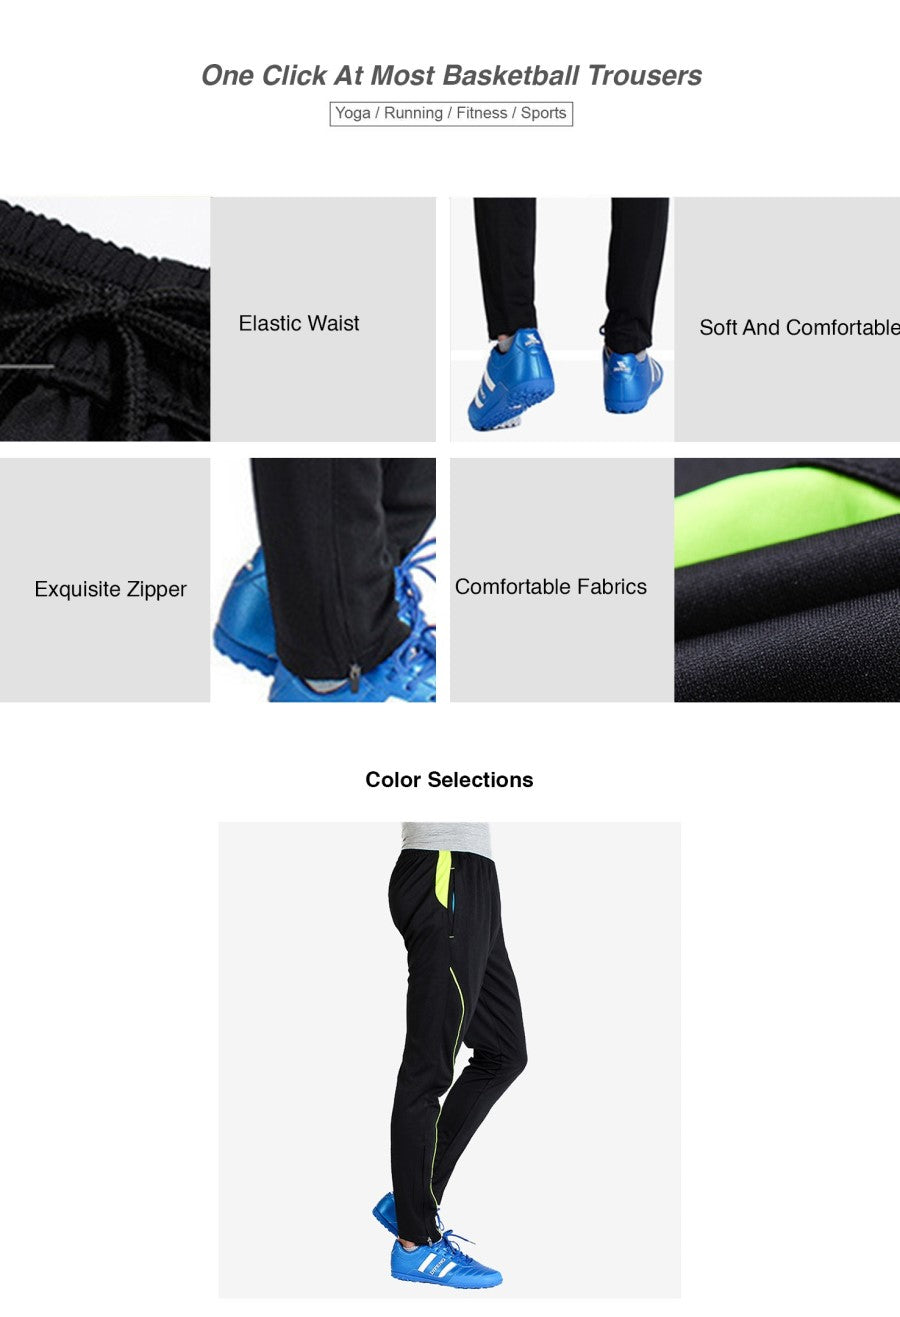 One Click At Most Basketball Trousers